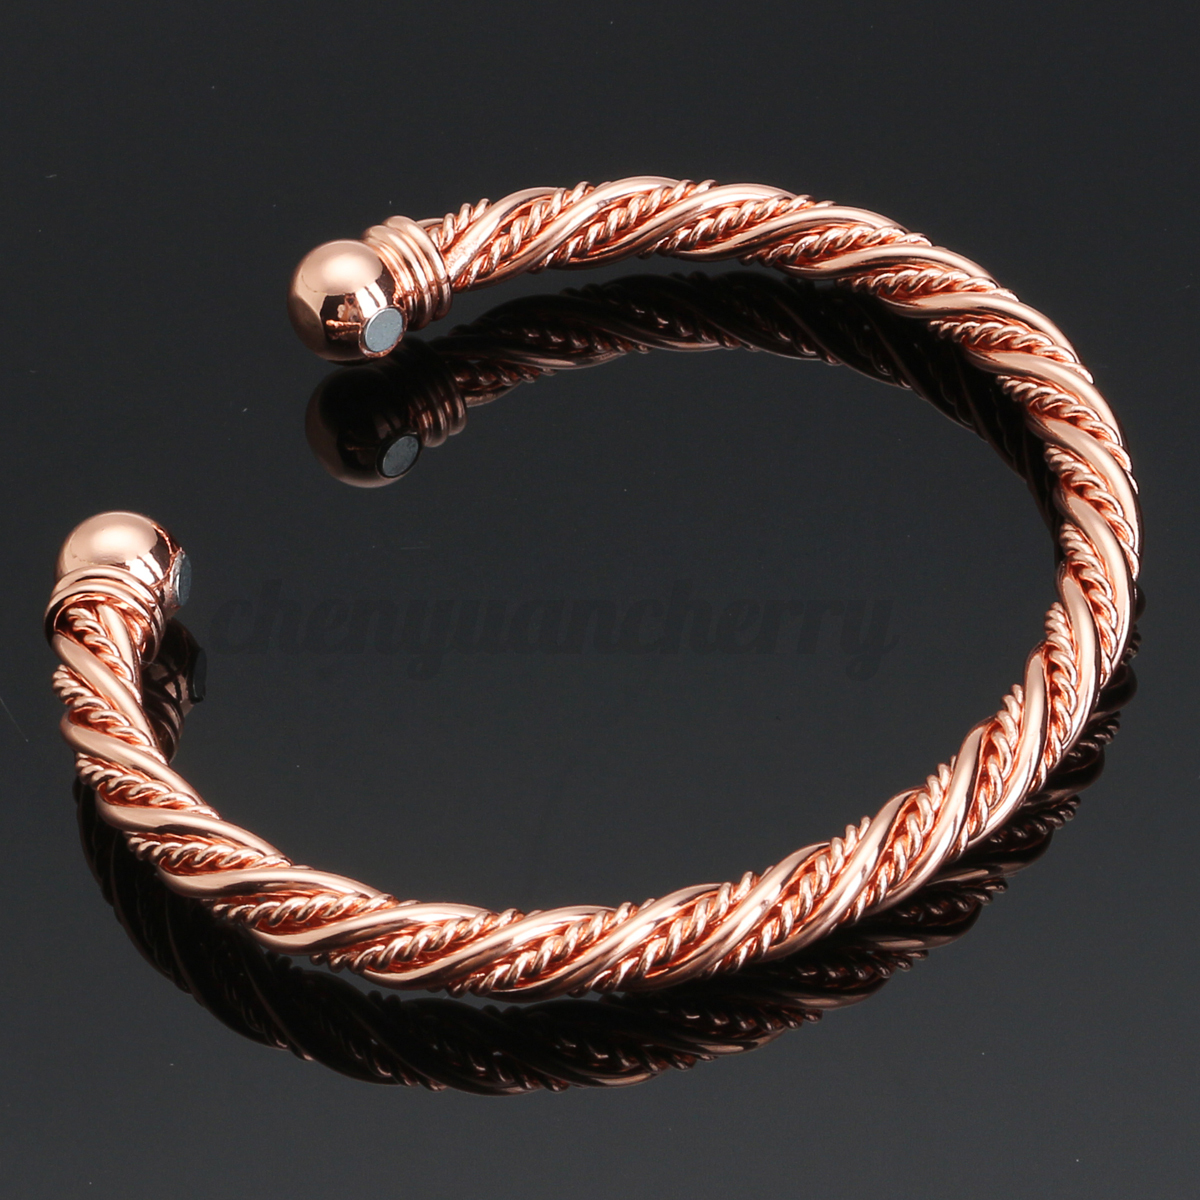 Unisex-Copper-Magnetic-Bracelet-Therapy-Relief-Arthritis-Pain-Healing-Bangle